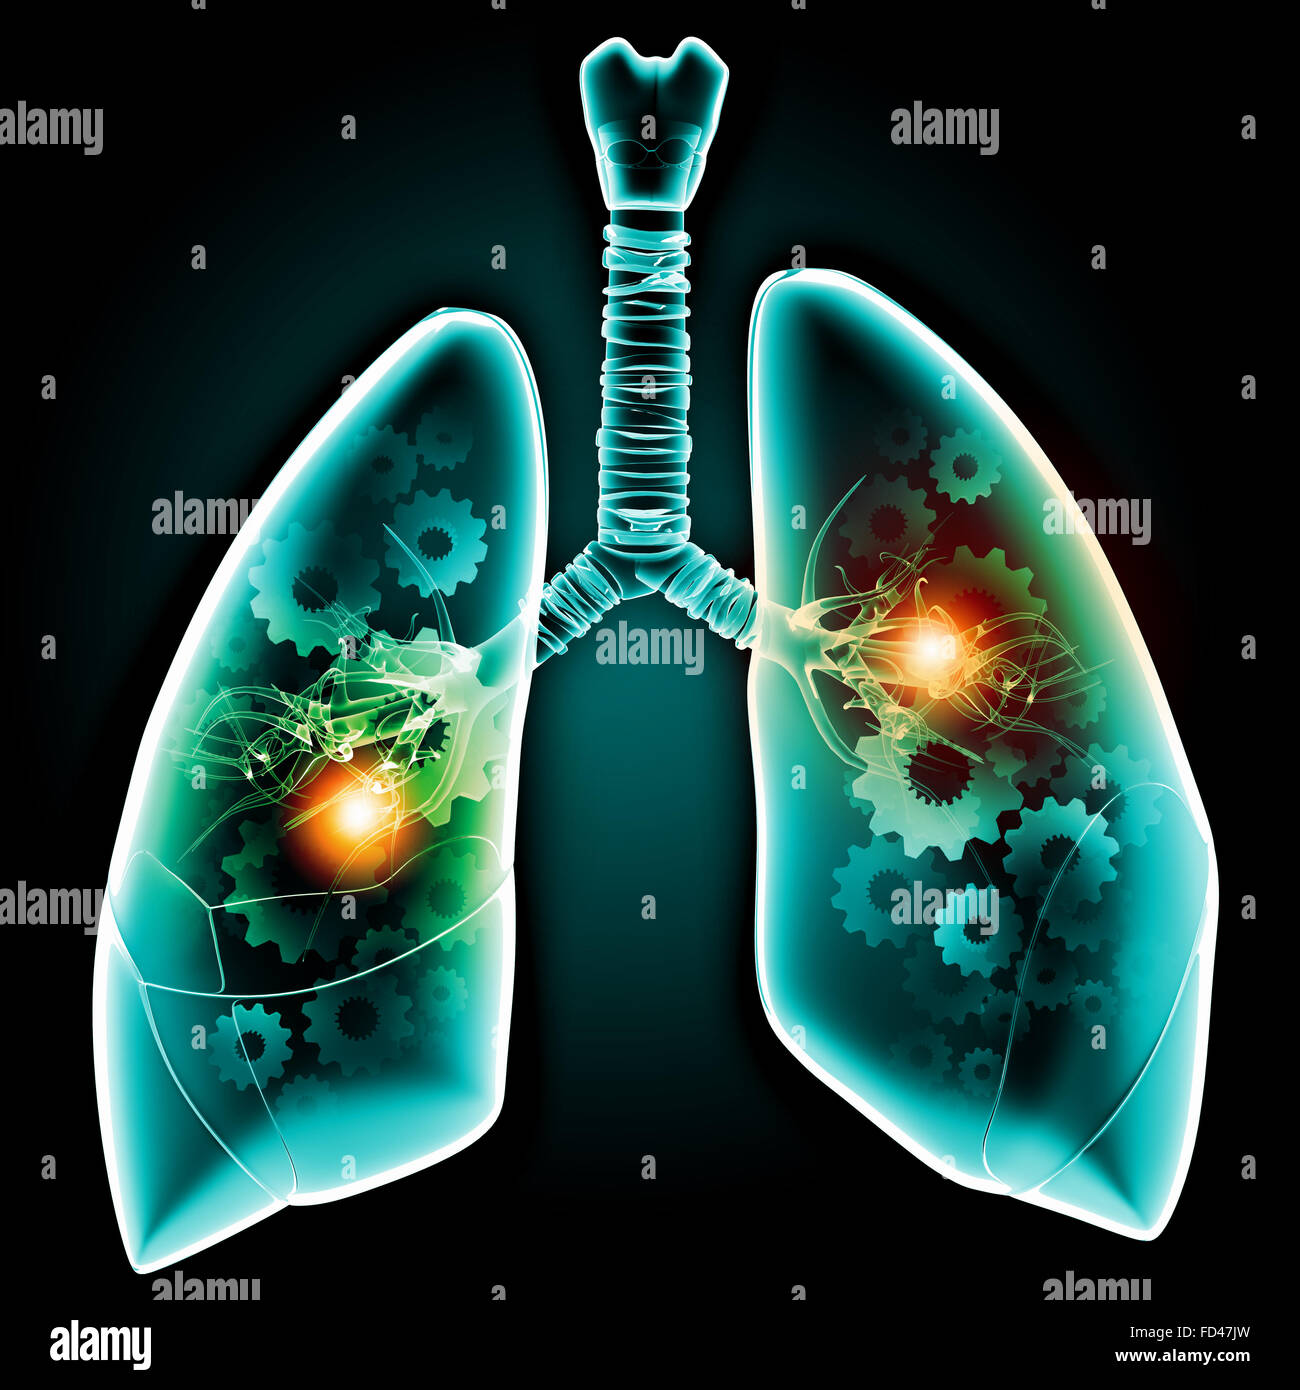 Human lungs with mechanisms. Health and medicine - Stock Image